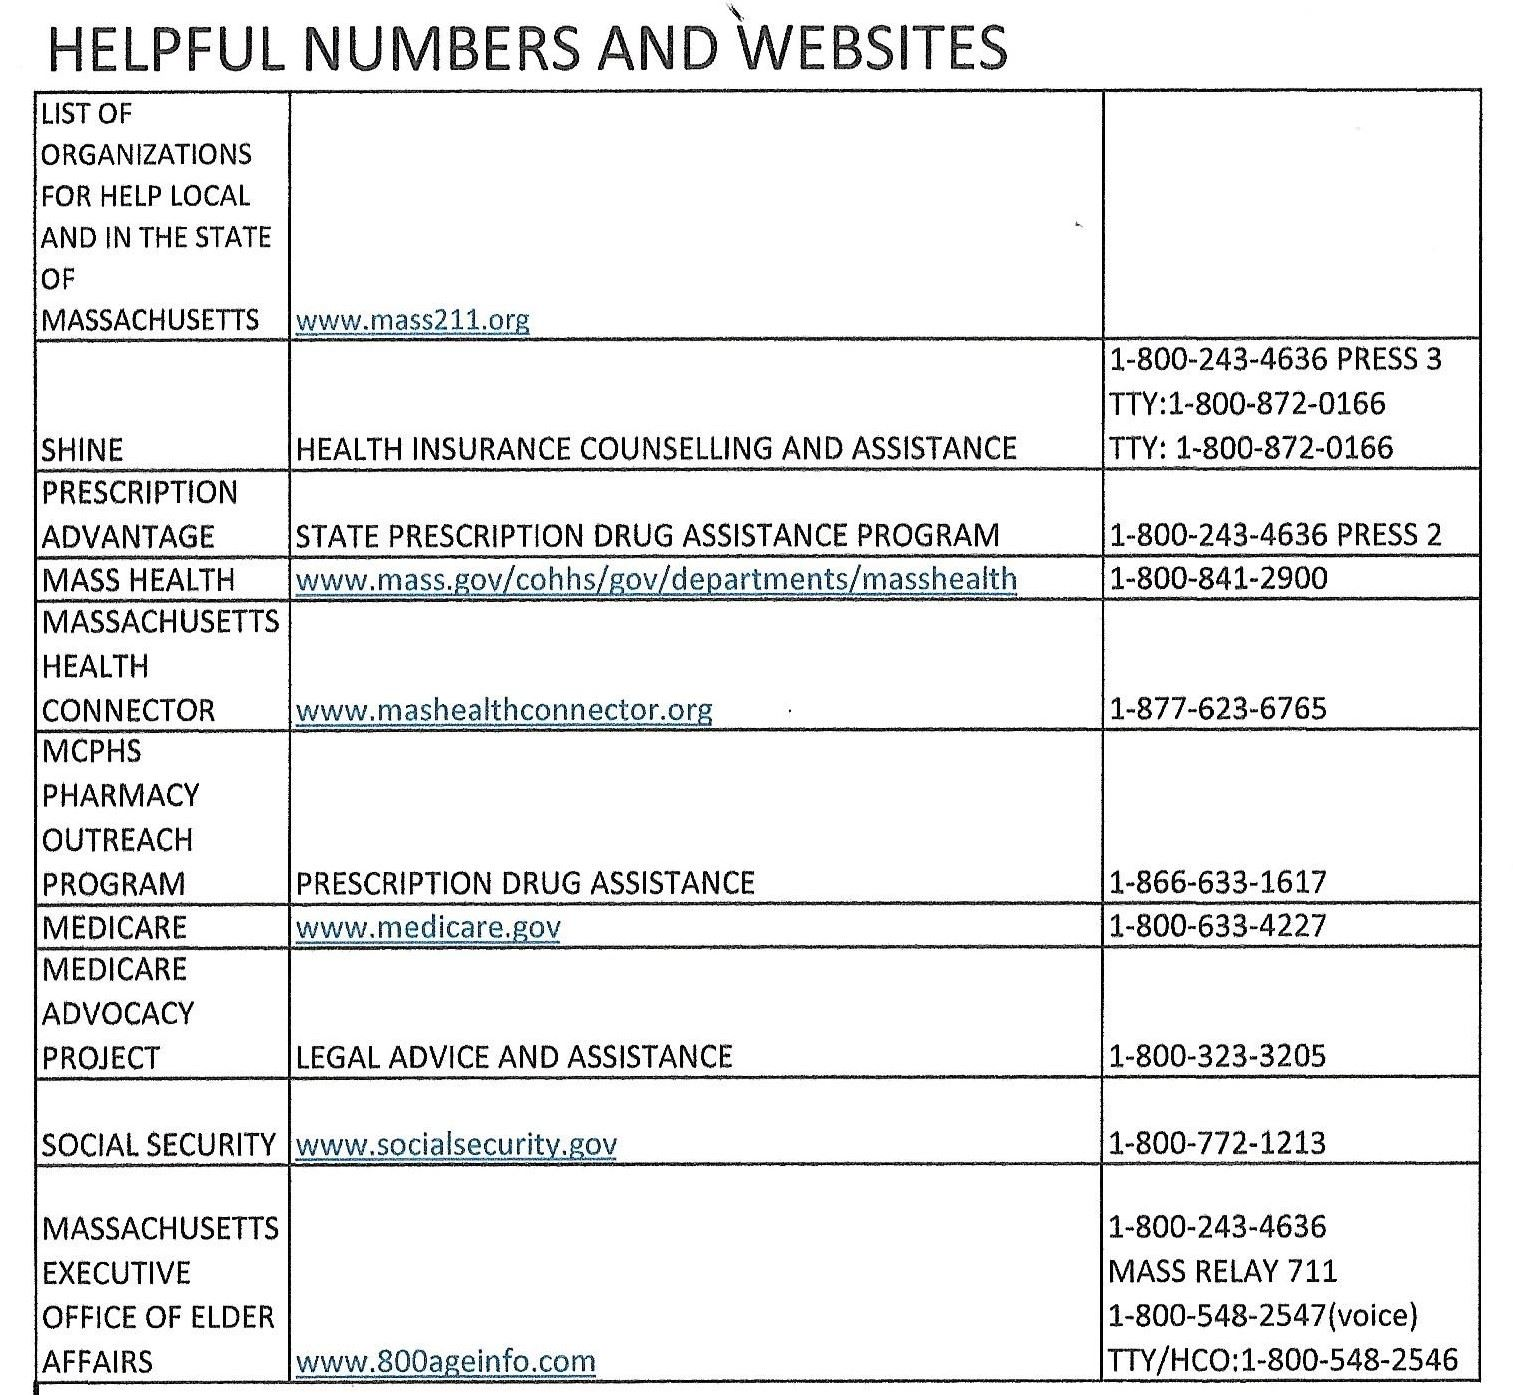 HELPFUL NUMBERS and WEBSITES